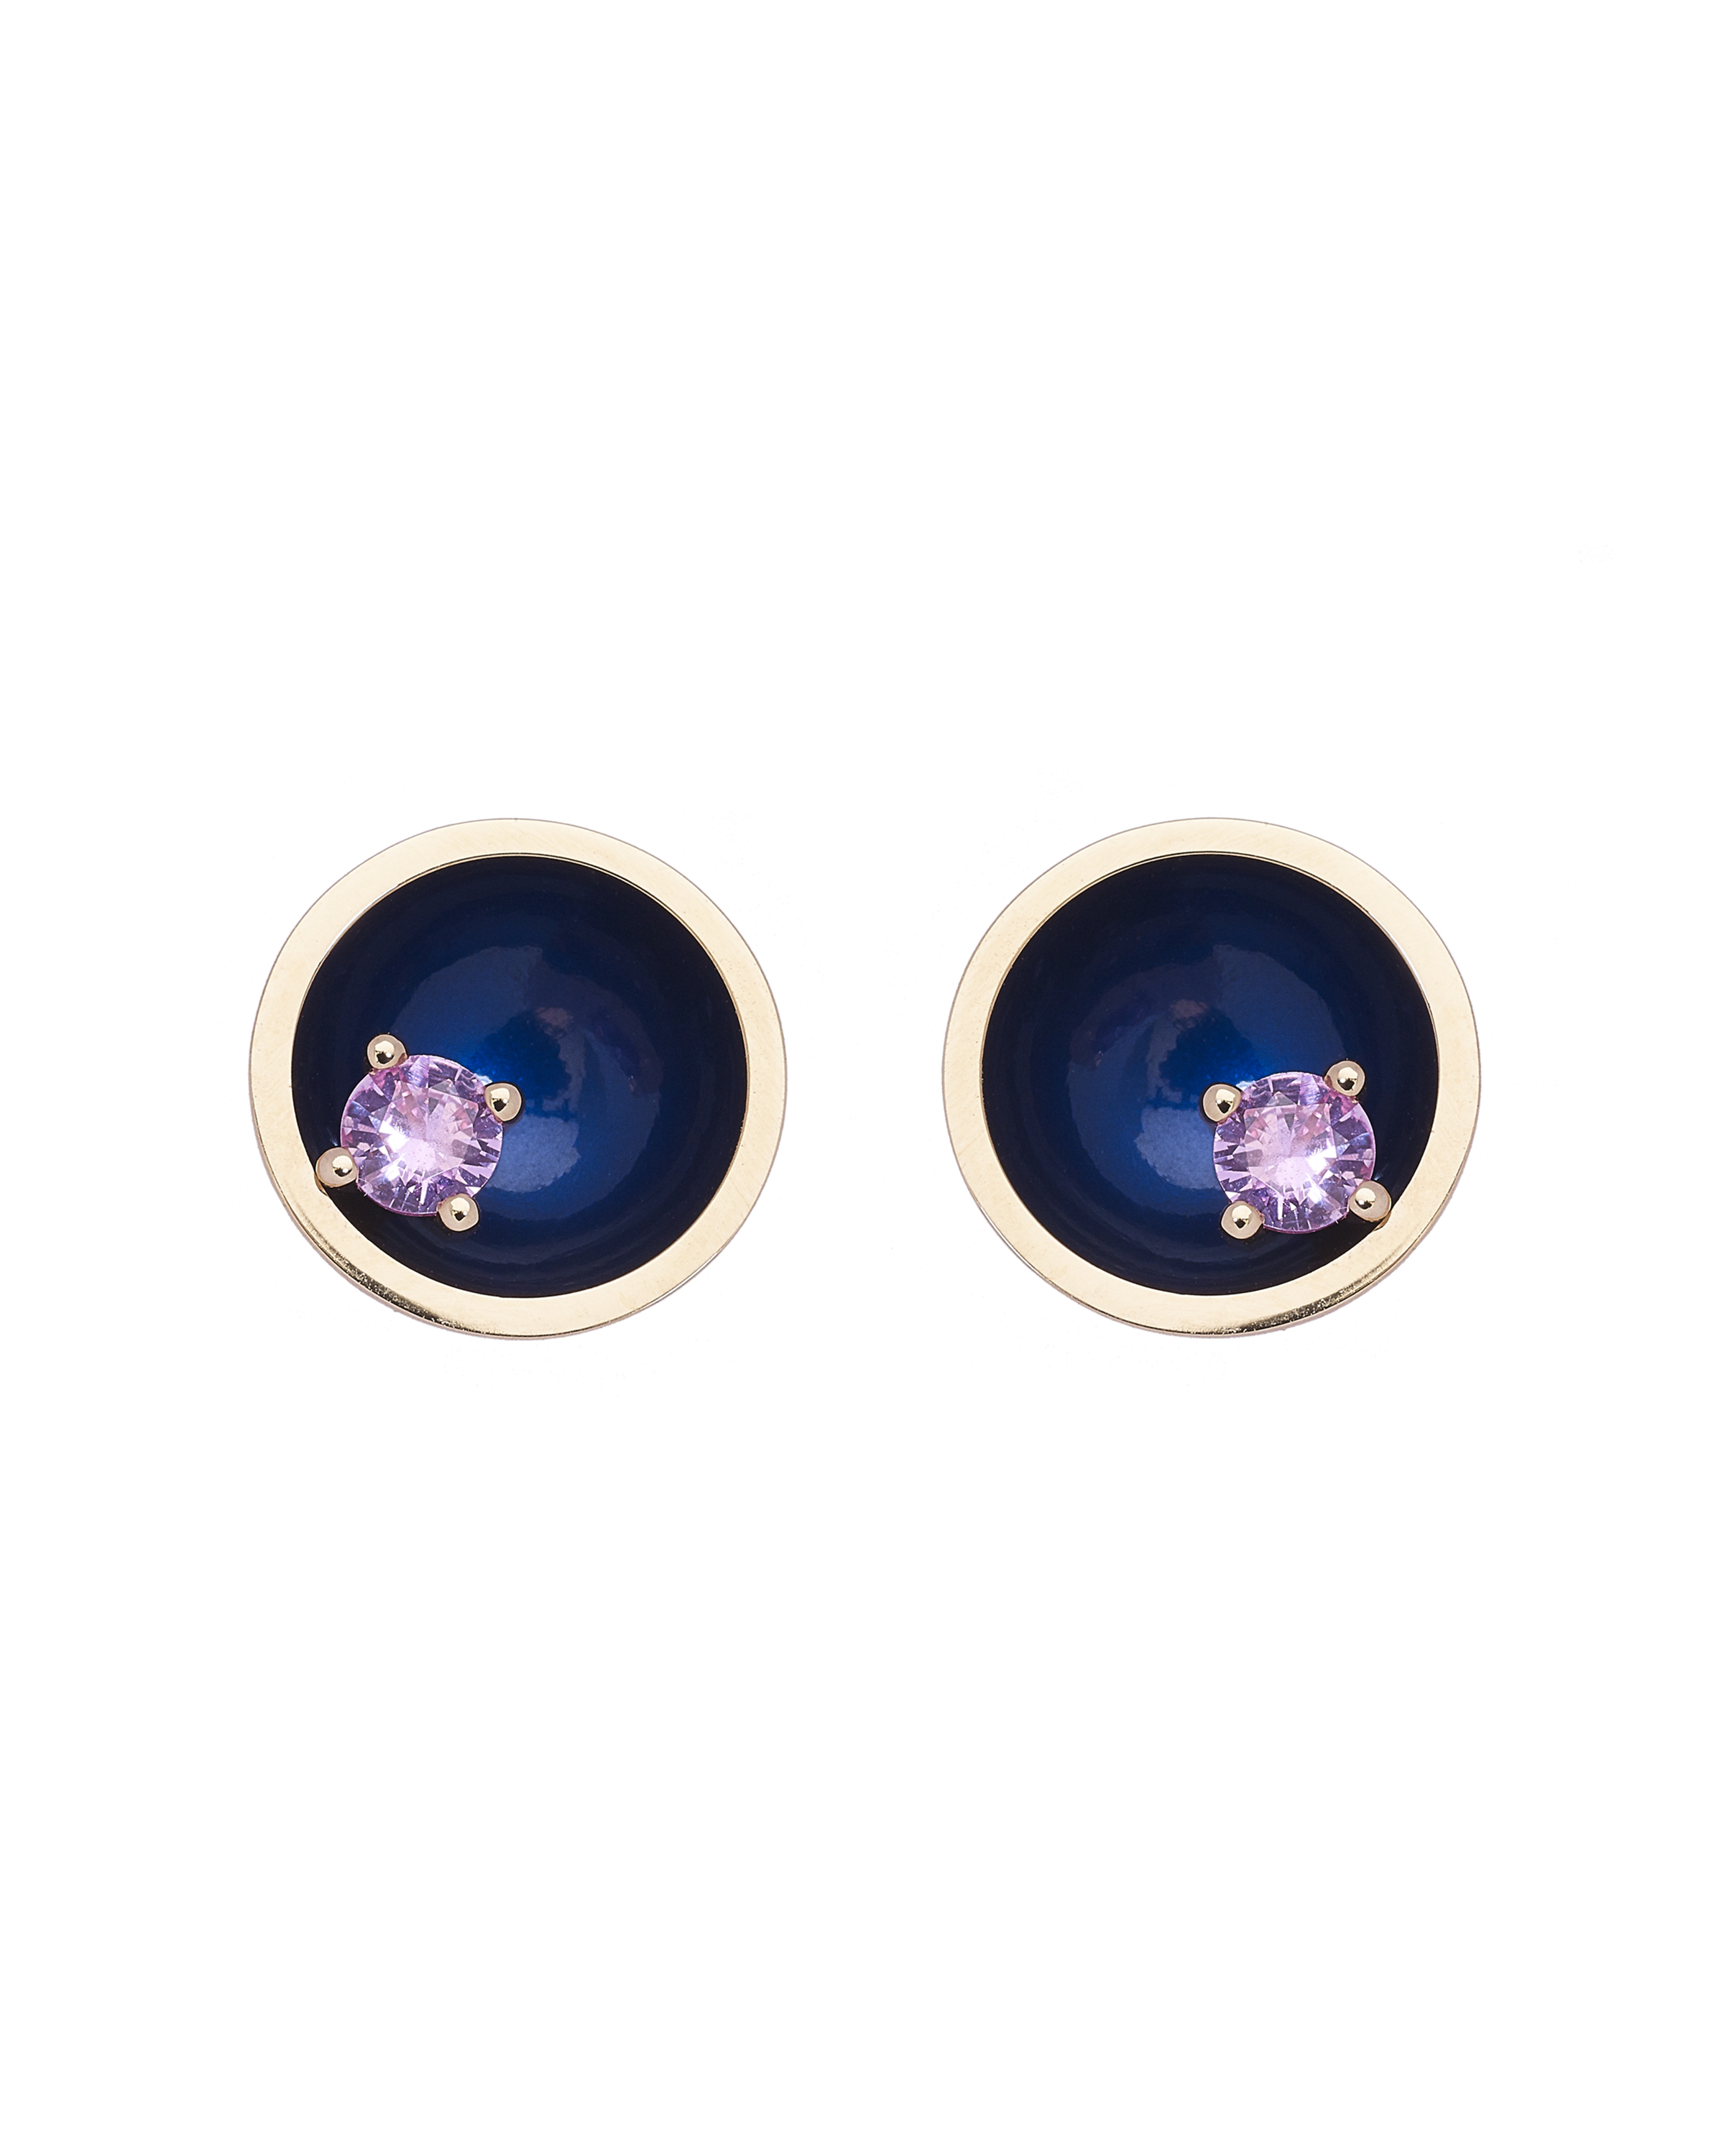 Large Floating Star Pink Sapphire Earrings by Marmari on curated-crowd.com